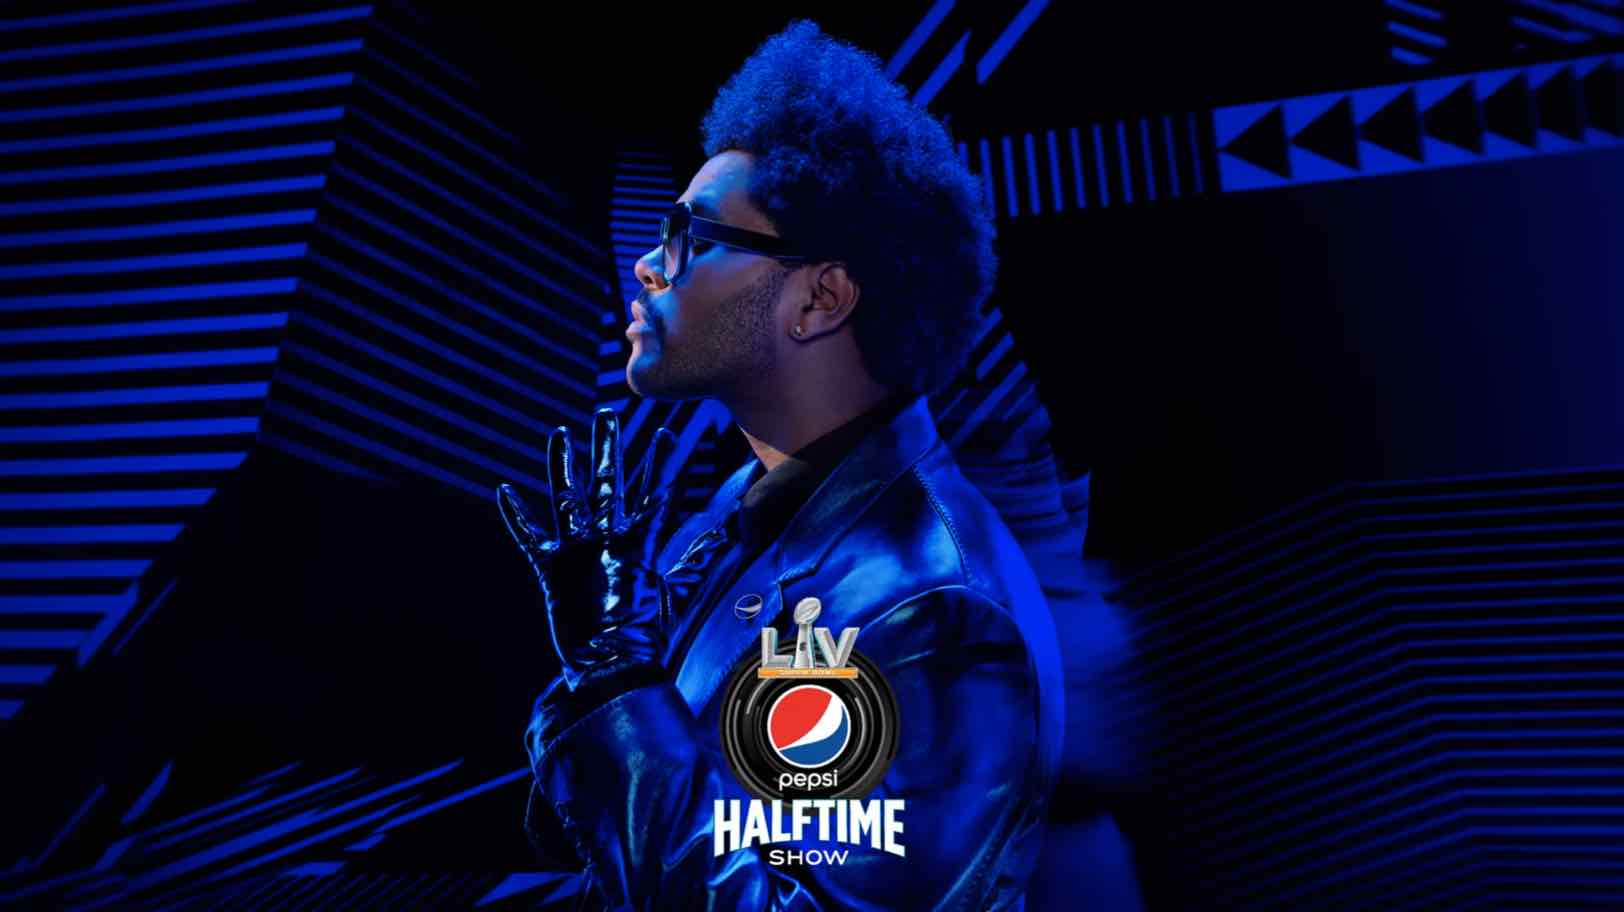 How to watch Super Bowl LV free halftime show